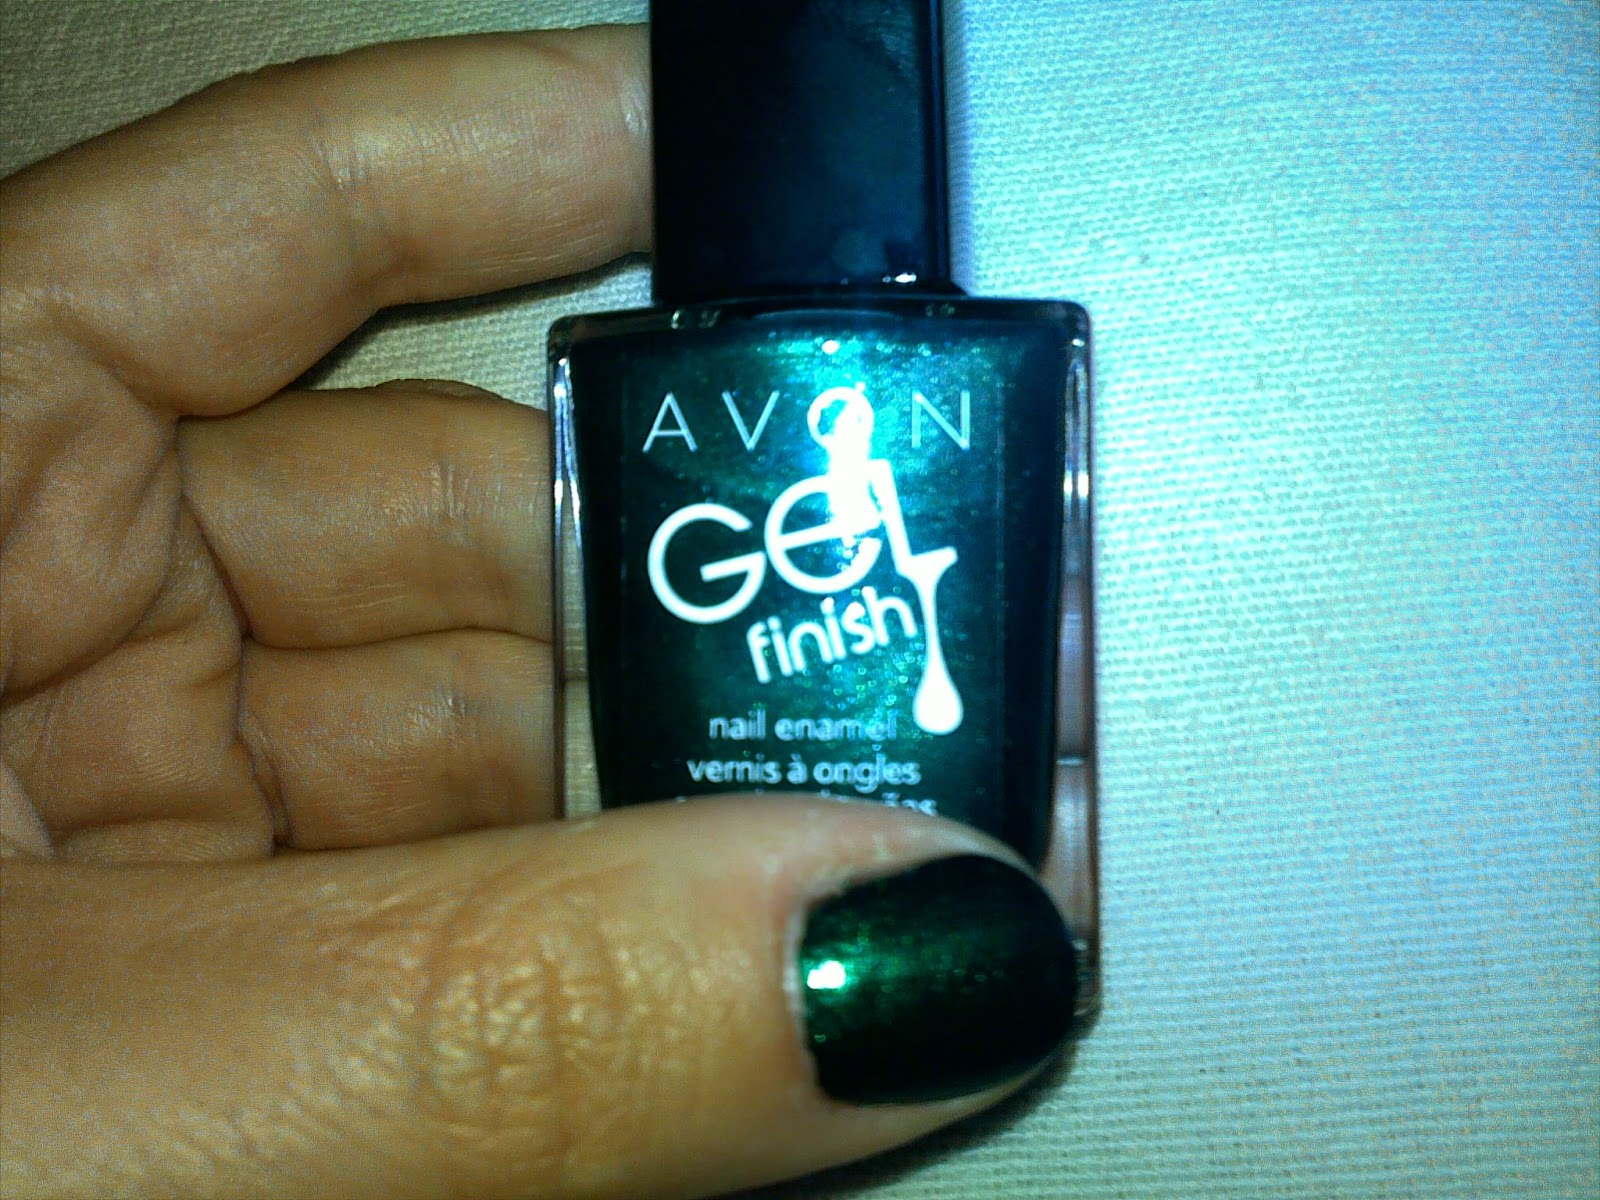 Avon, Gel Finish Nail Enamel, in shade Envy